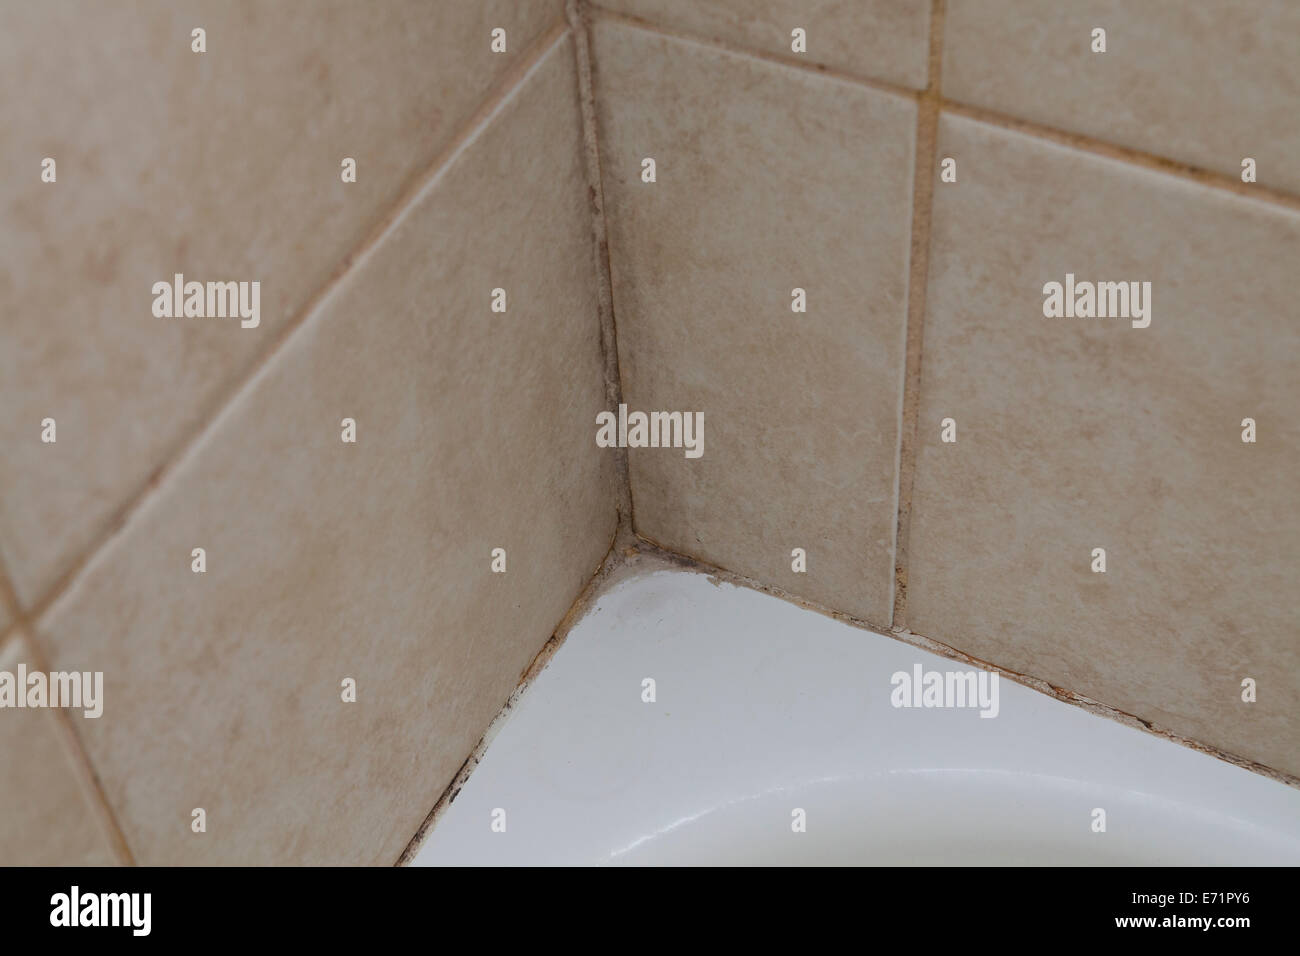 how to clean dirty grout in tiles